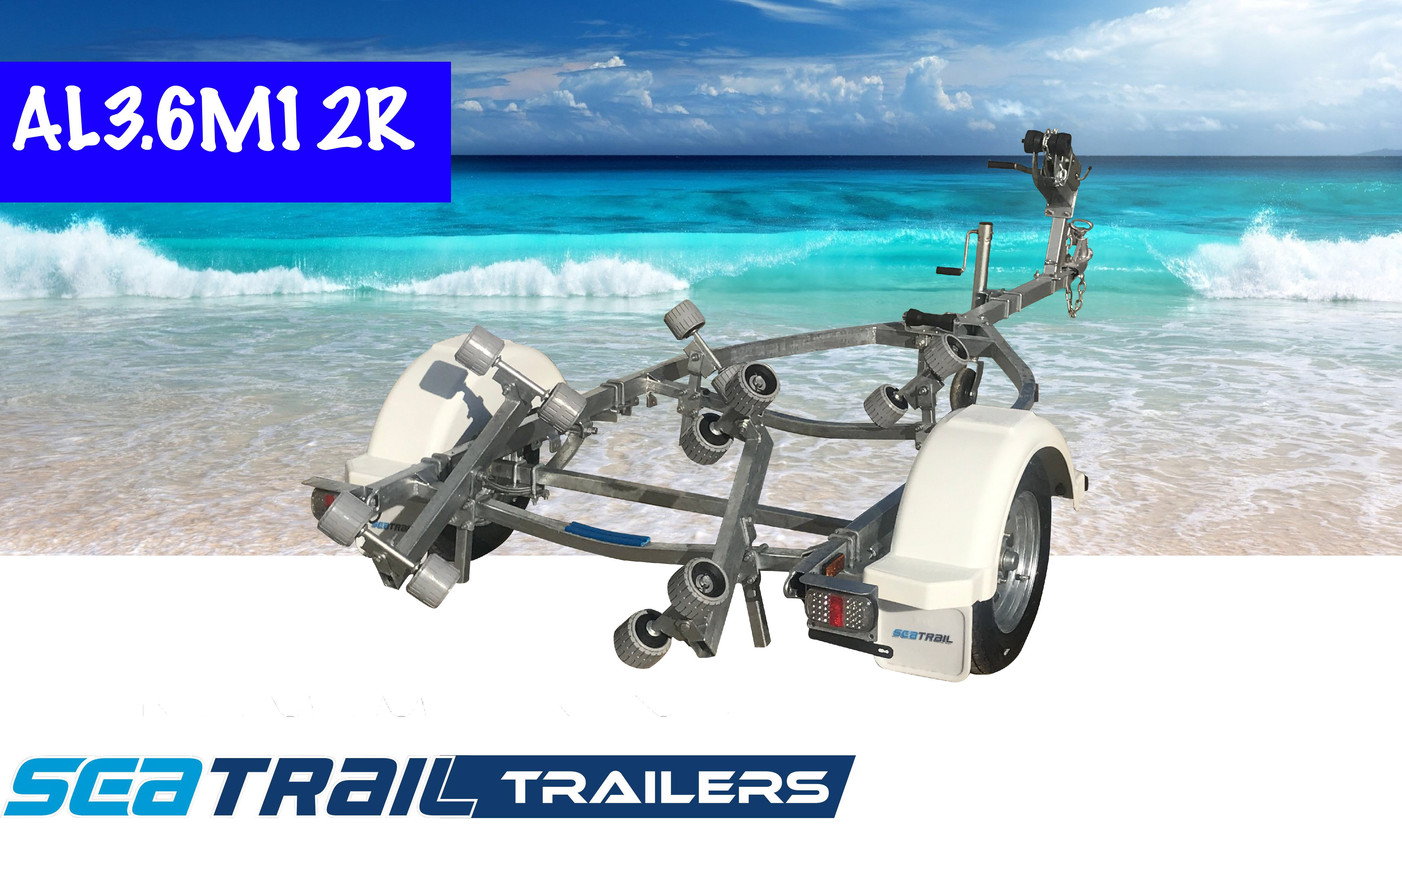 SEATRAIL AL3.8M12R ROLLERED BOAT TRAILER